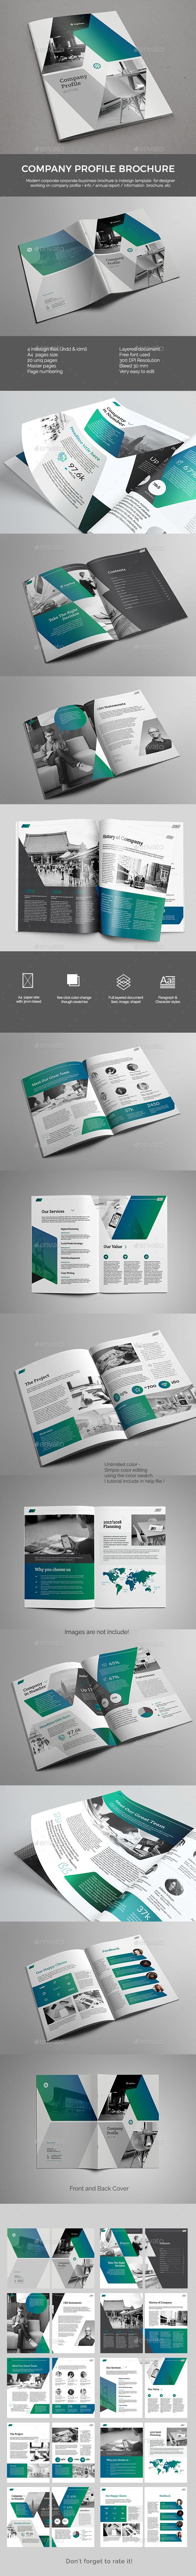 Company Profile — InDesign INDD #global #template • Available here → https://graphicriver.net/item/company-profile/19401862?ref=pxcr